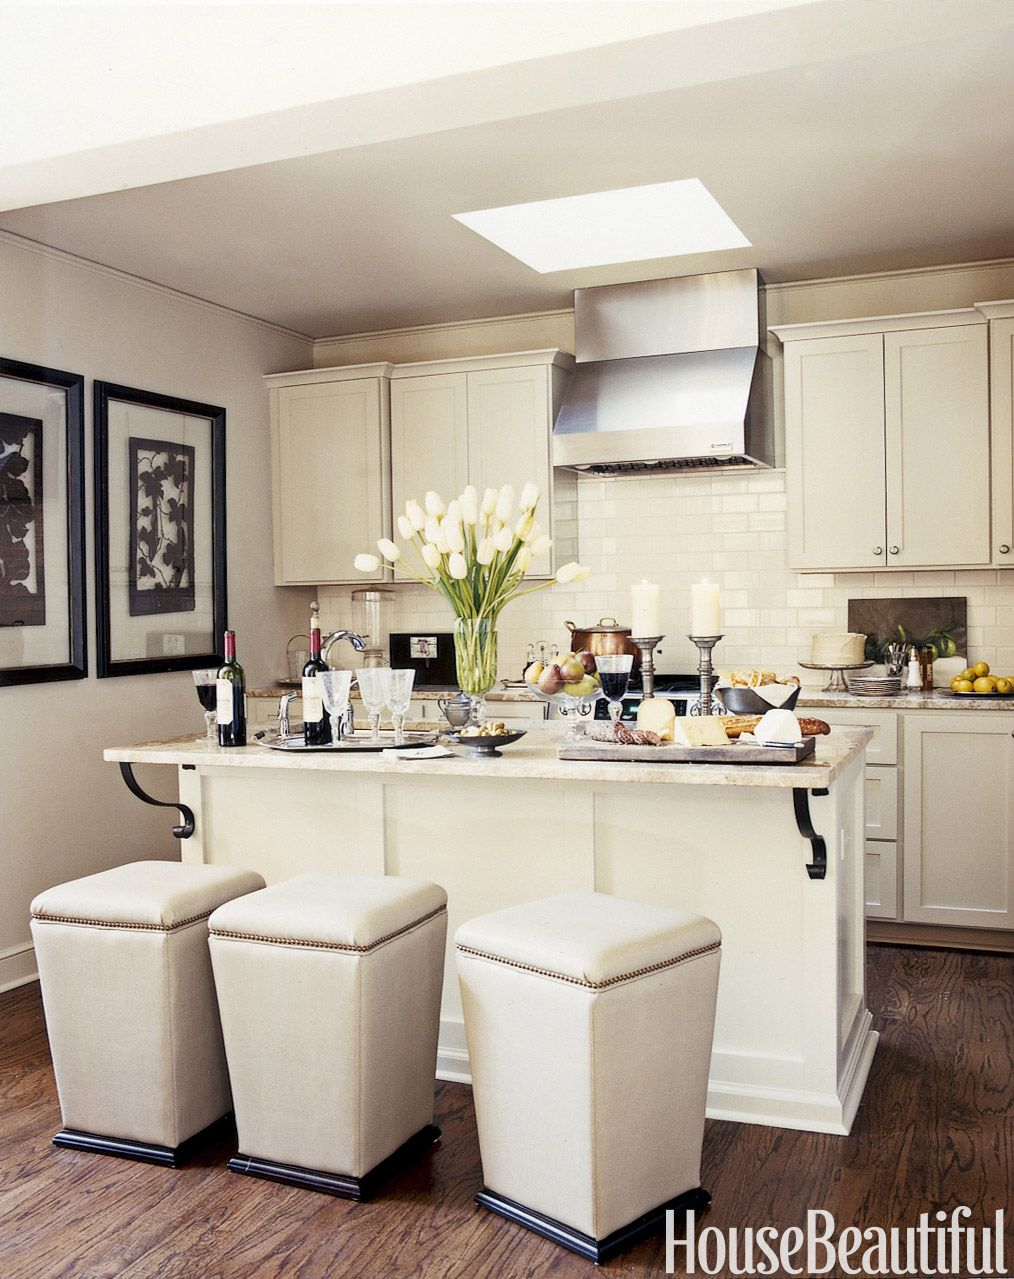 Small Kitchen Design 40+ best small kitchen design ideas - decor solutions for small kitchens WWIKMNM